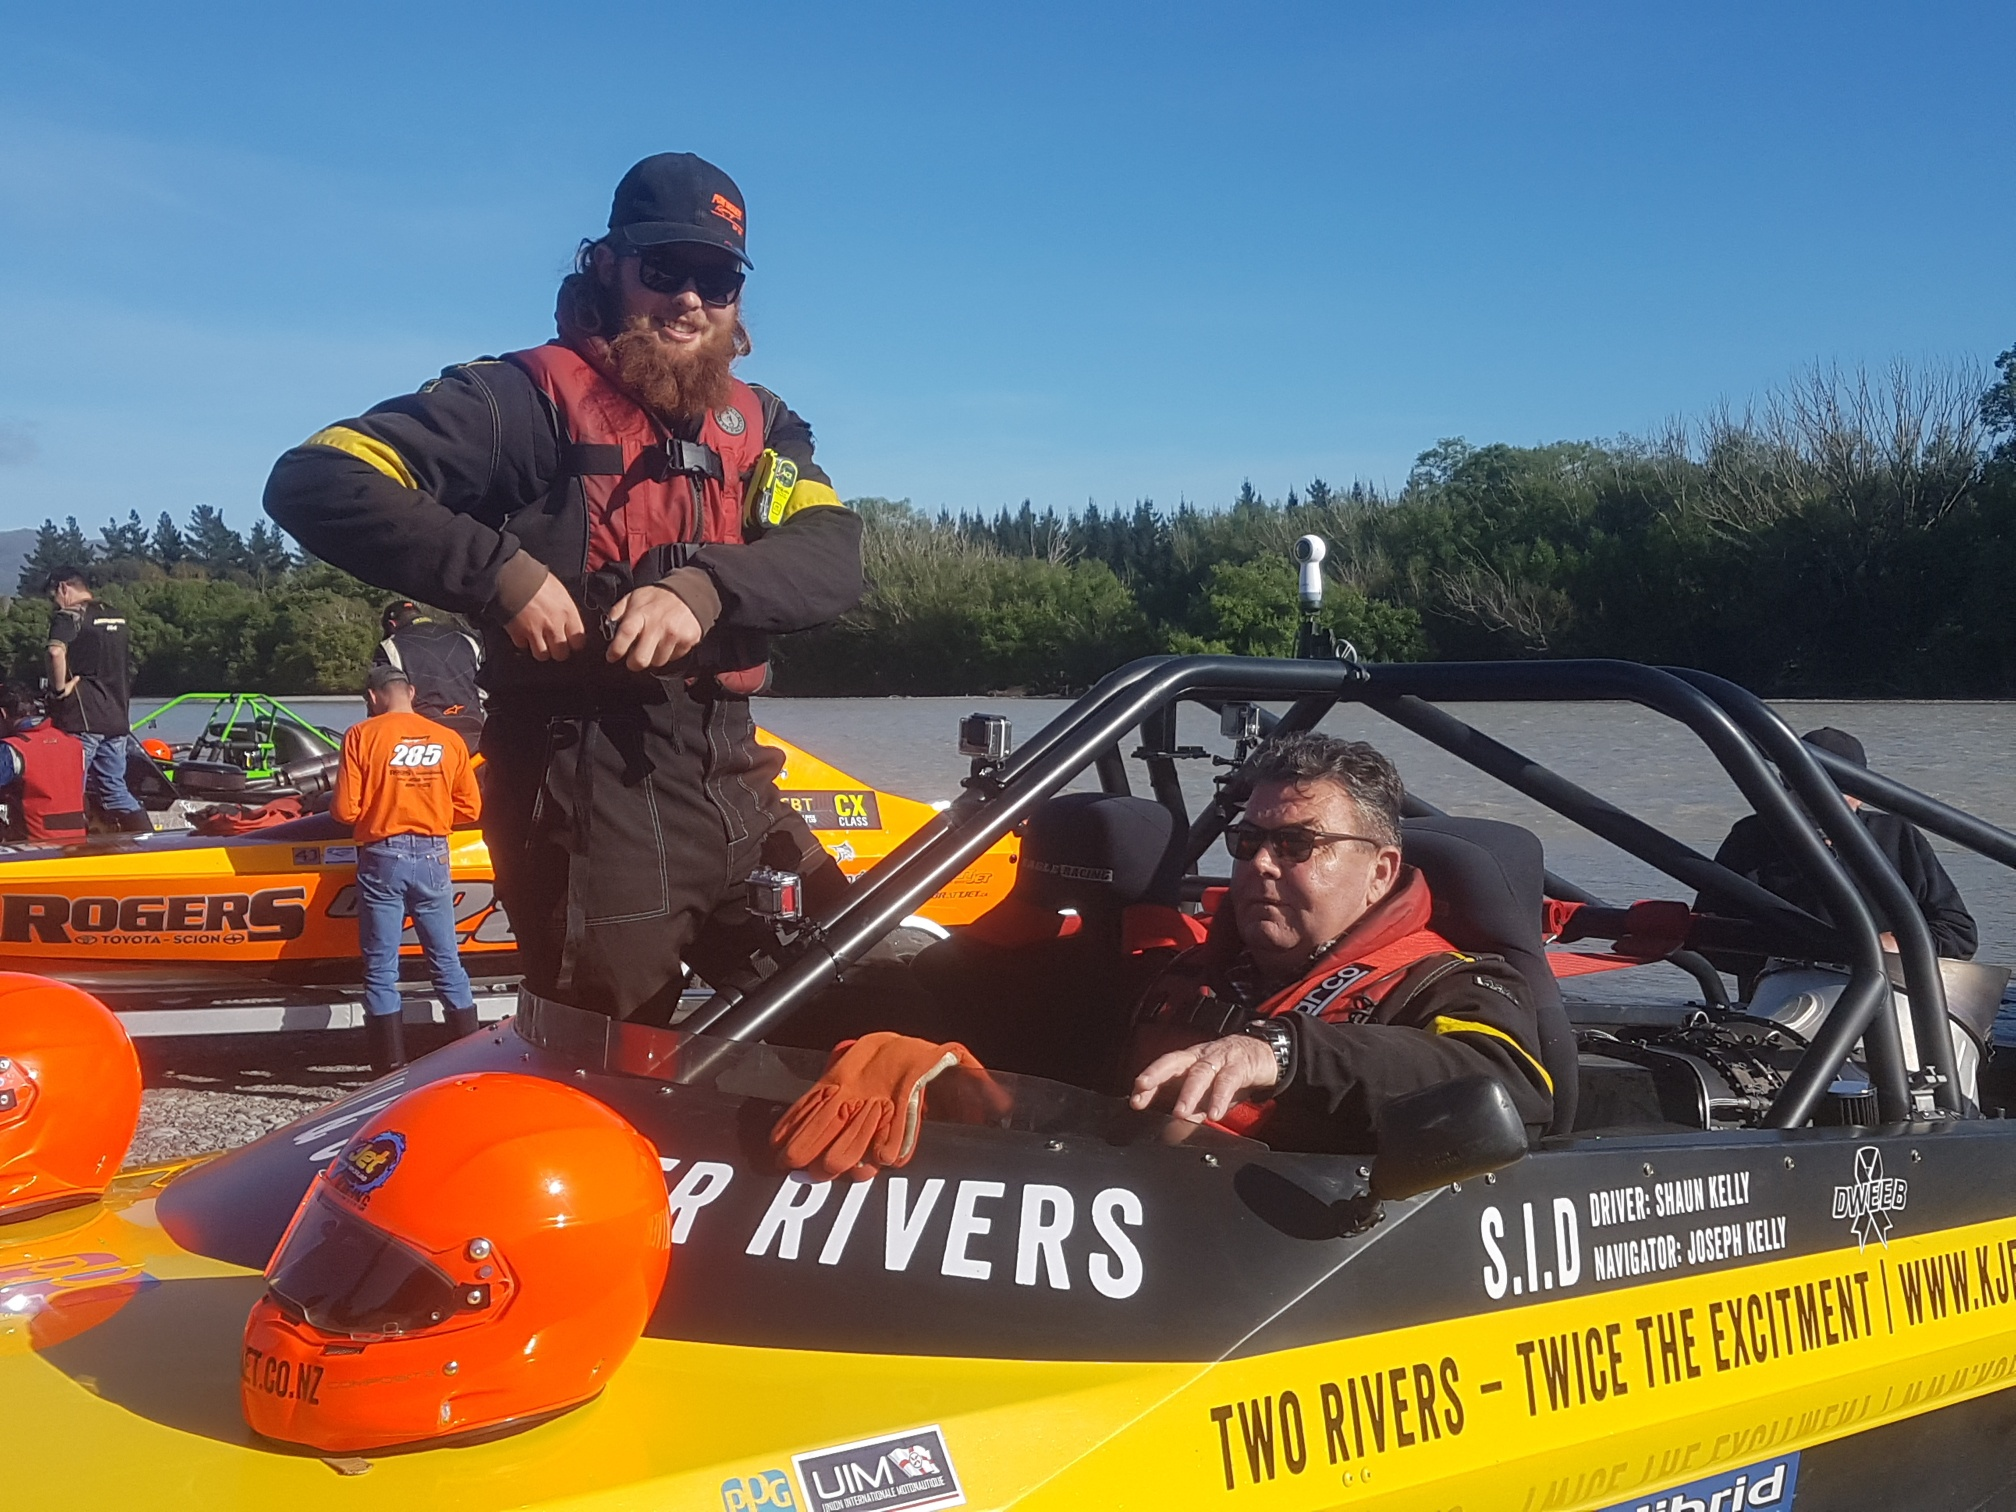 Jet boat River Racing team Shaun and Joe